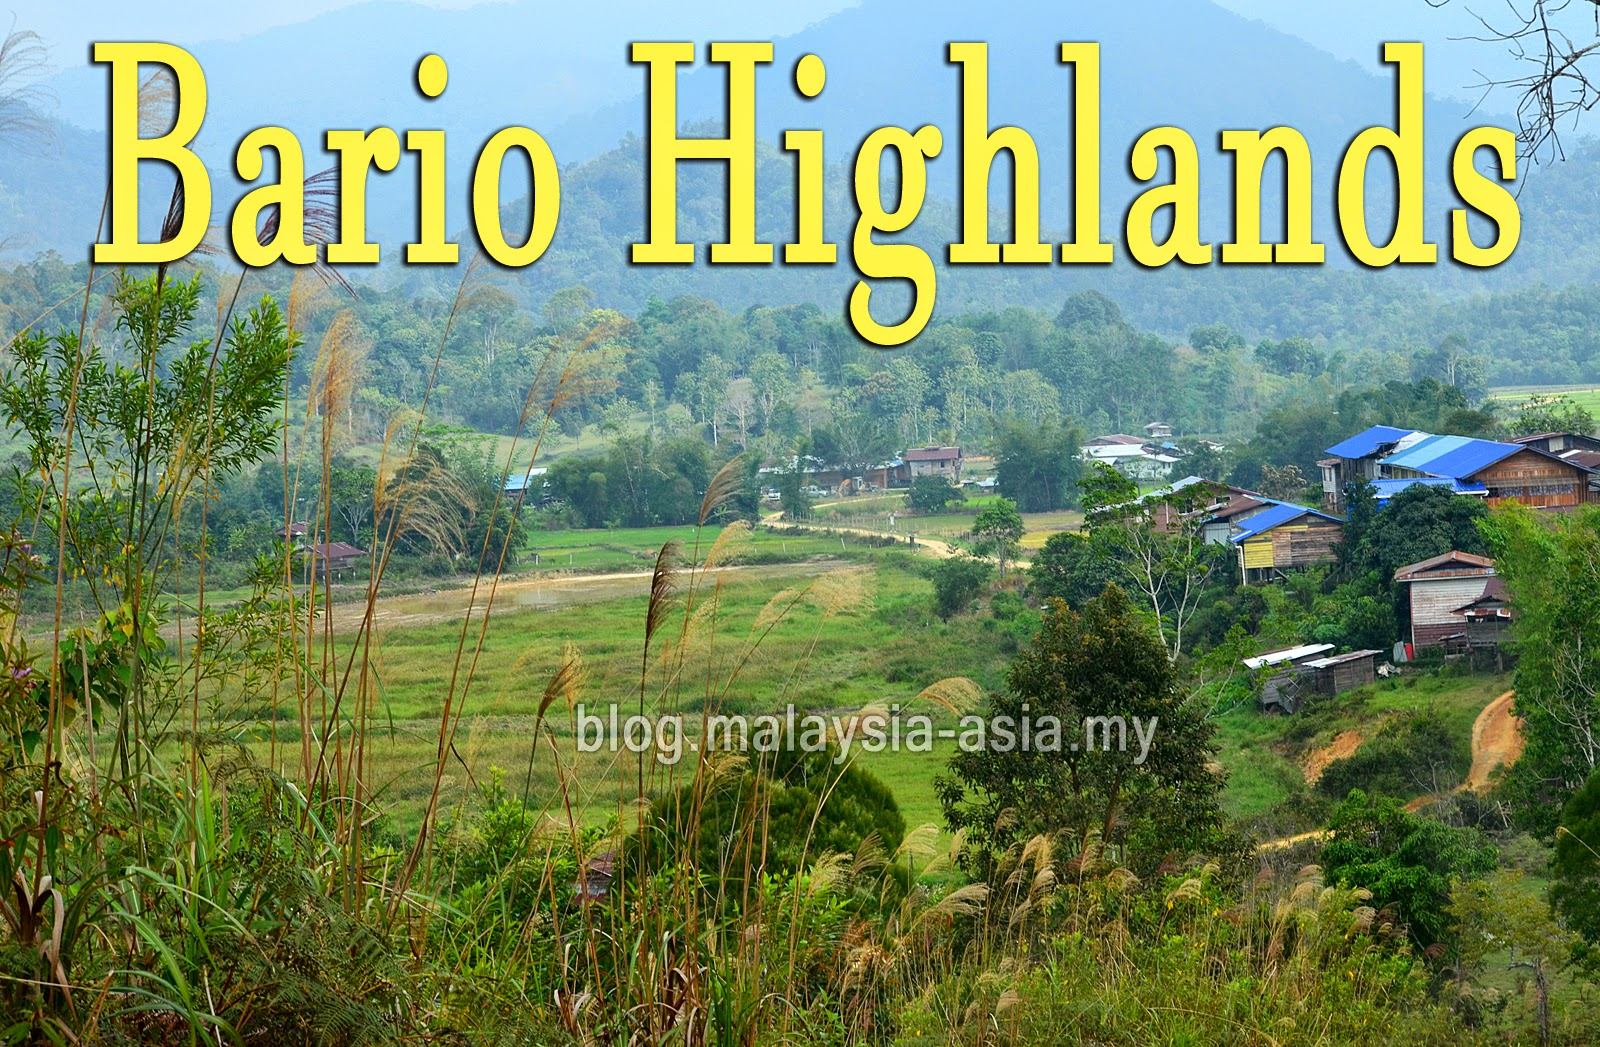 Journey to the Bario Highlands in Sarawak